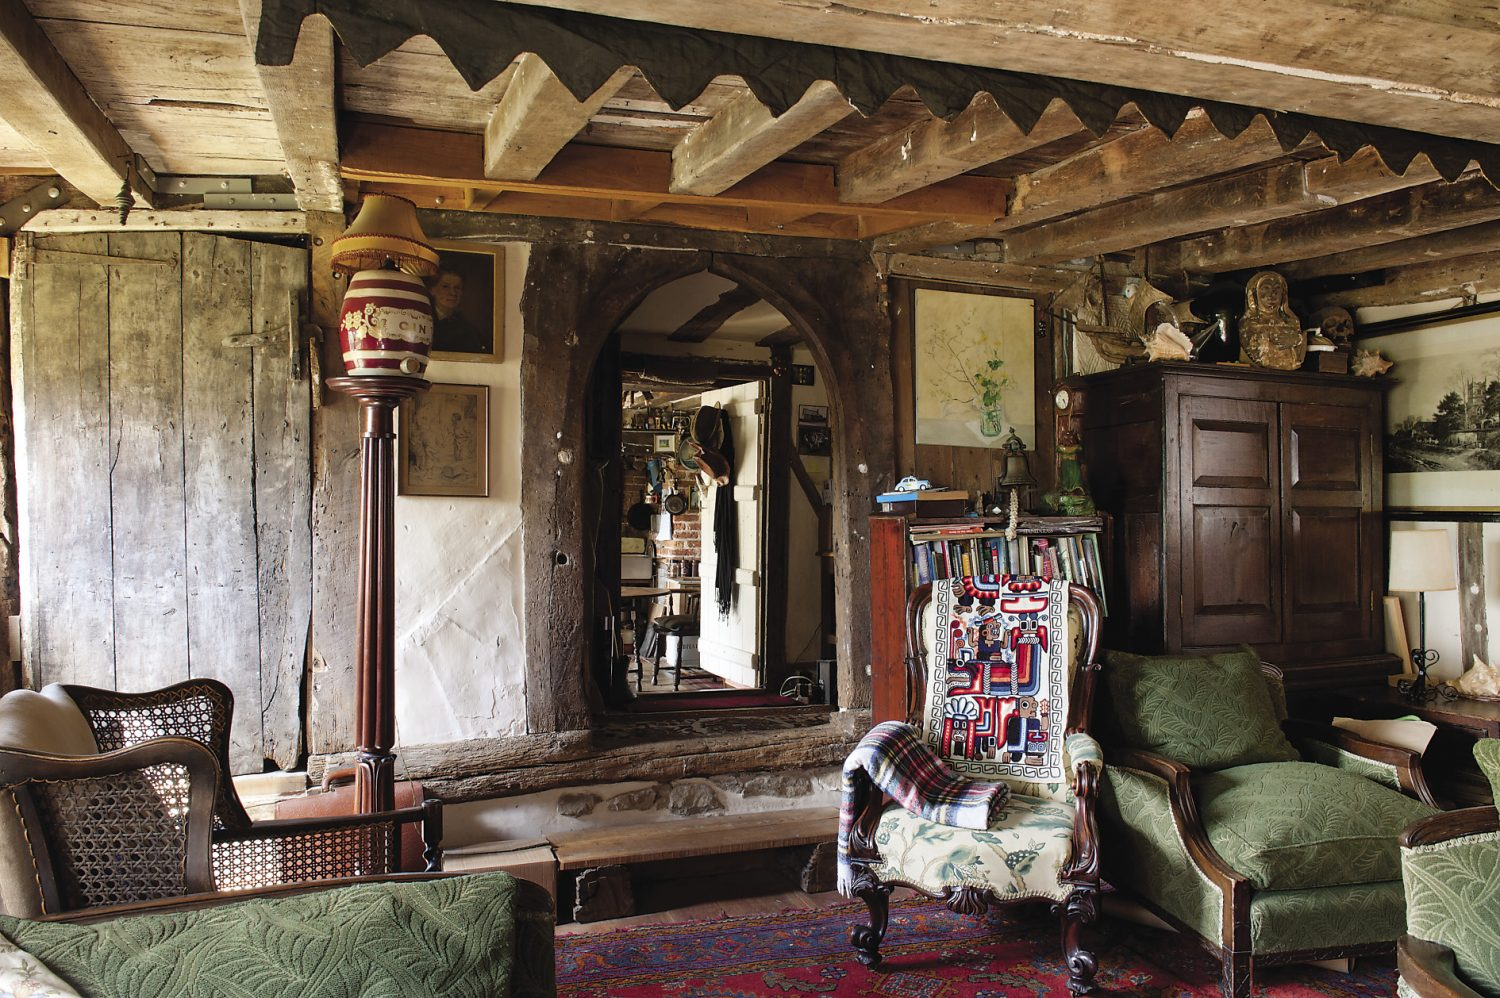 Throughout the house, every nook and cranny is home to some fascinating and much loved item, many of which have tumbled down through the generations to be caught gently by their present owner